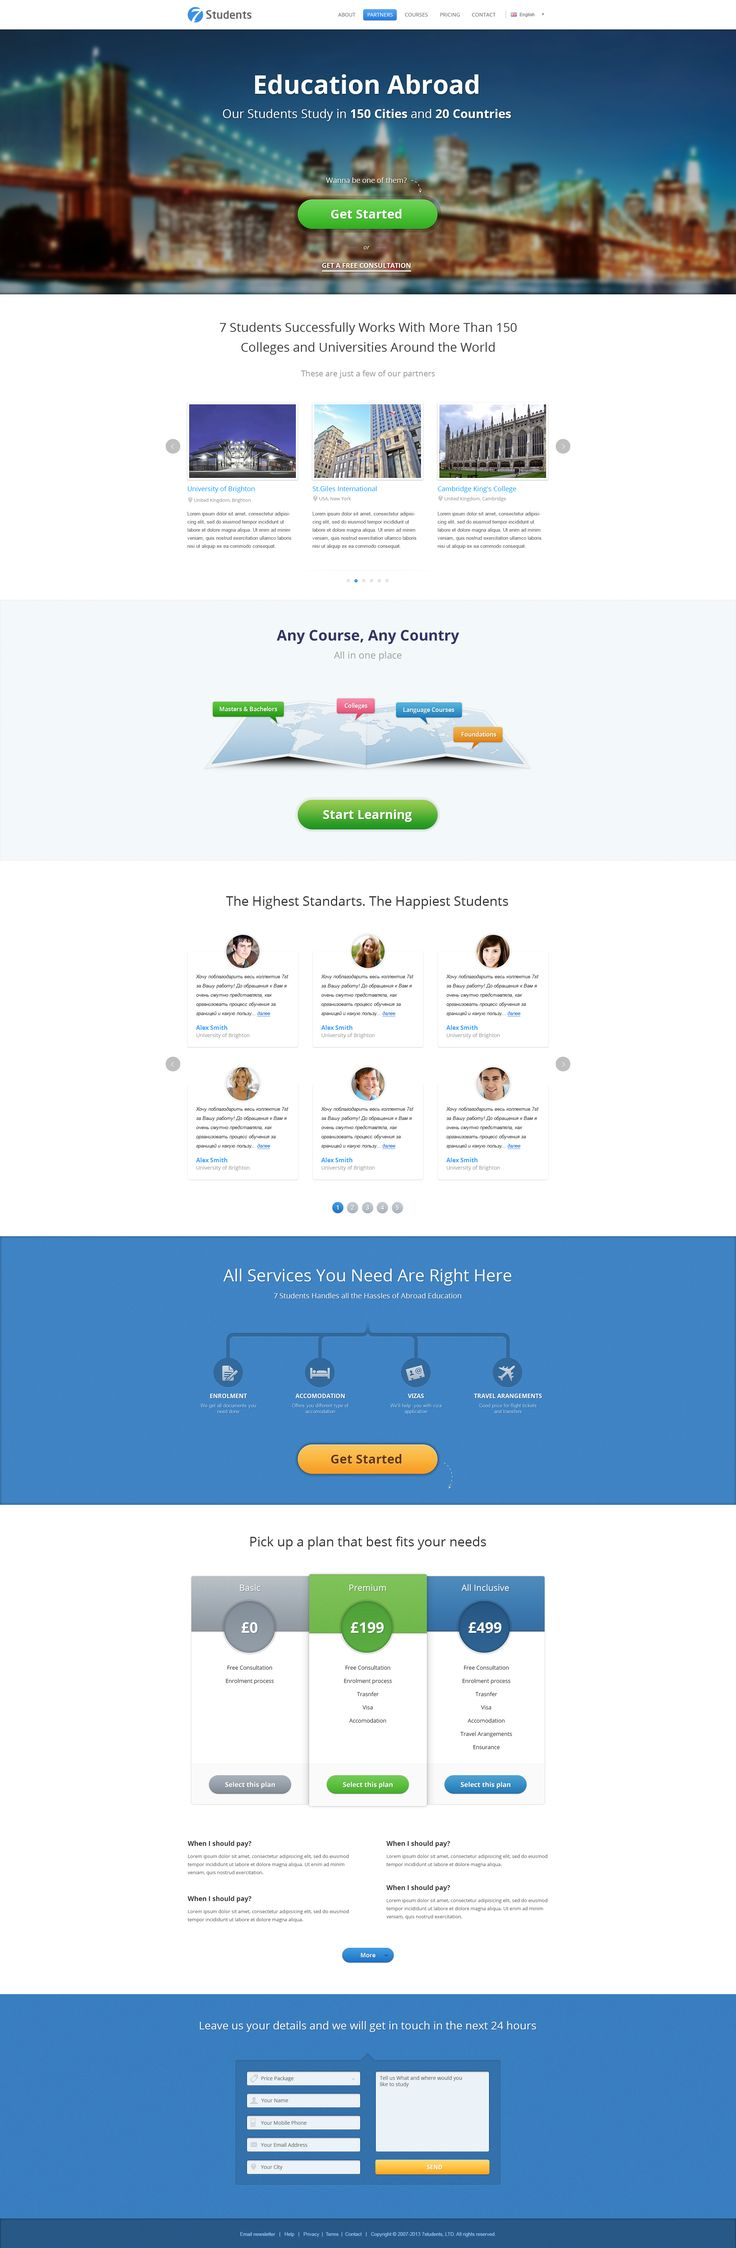 Dribbble - Ivo Ivanov - Clean and simple landing / how it works / pricing page all in one